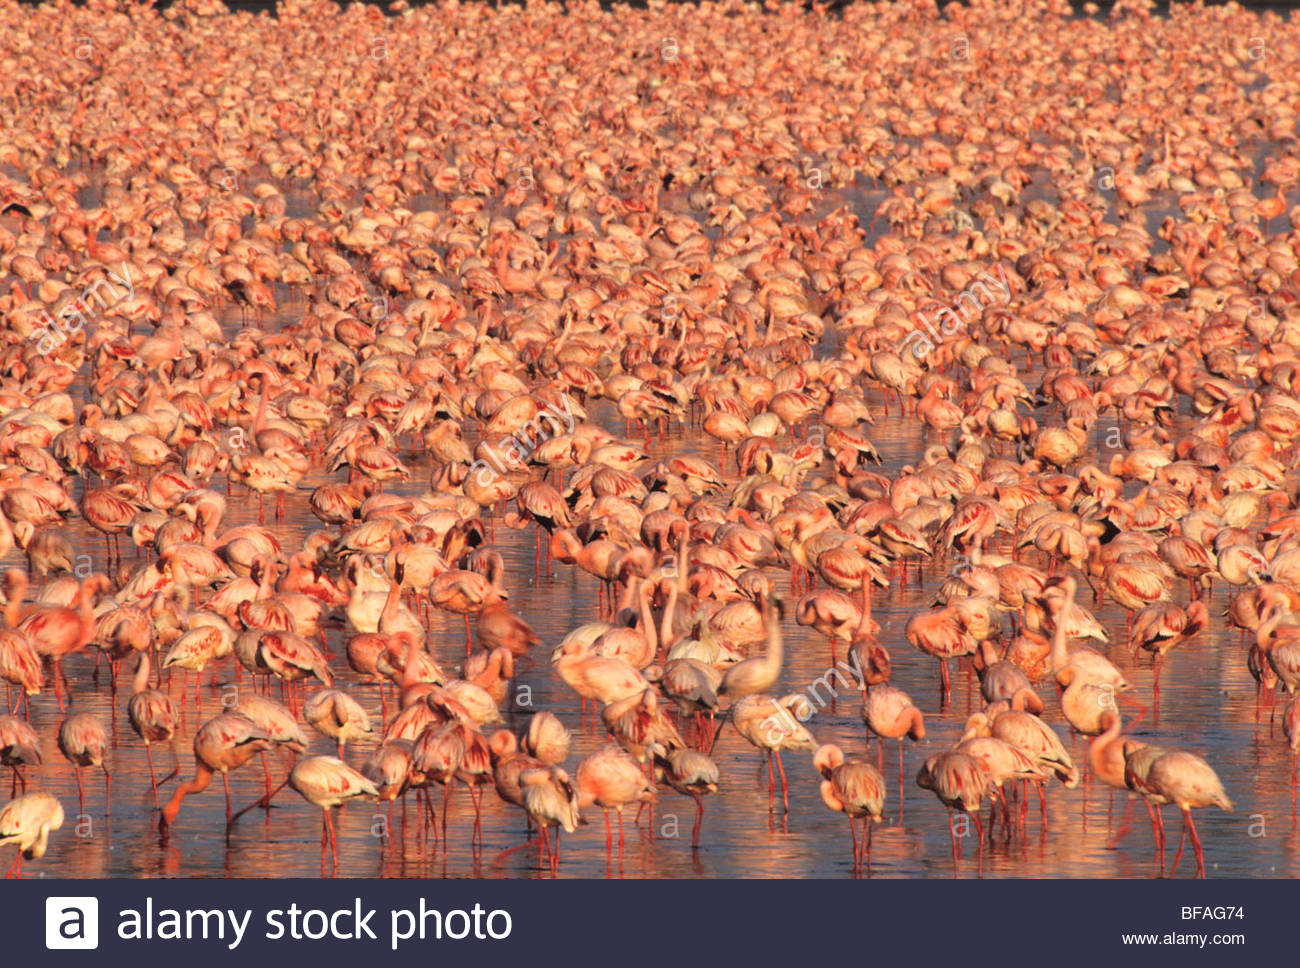 Lesser flamingos, Phoenicopterus minor, Lake Nakuru National Park, Kenya - Stock Image